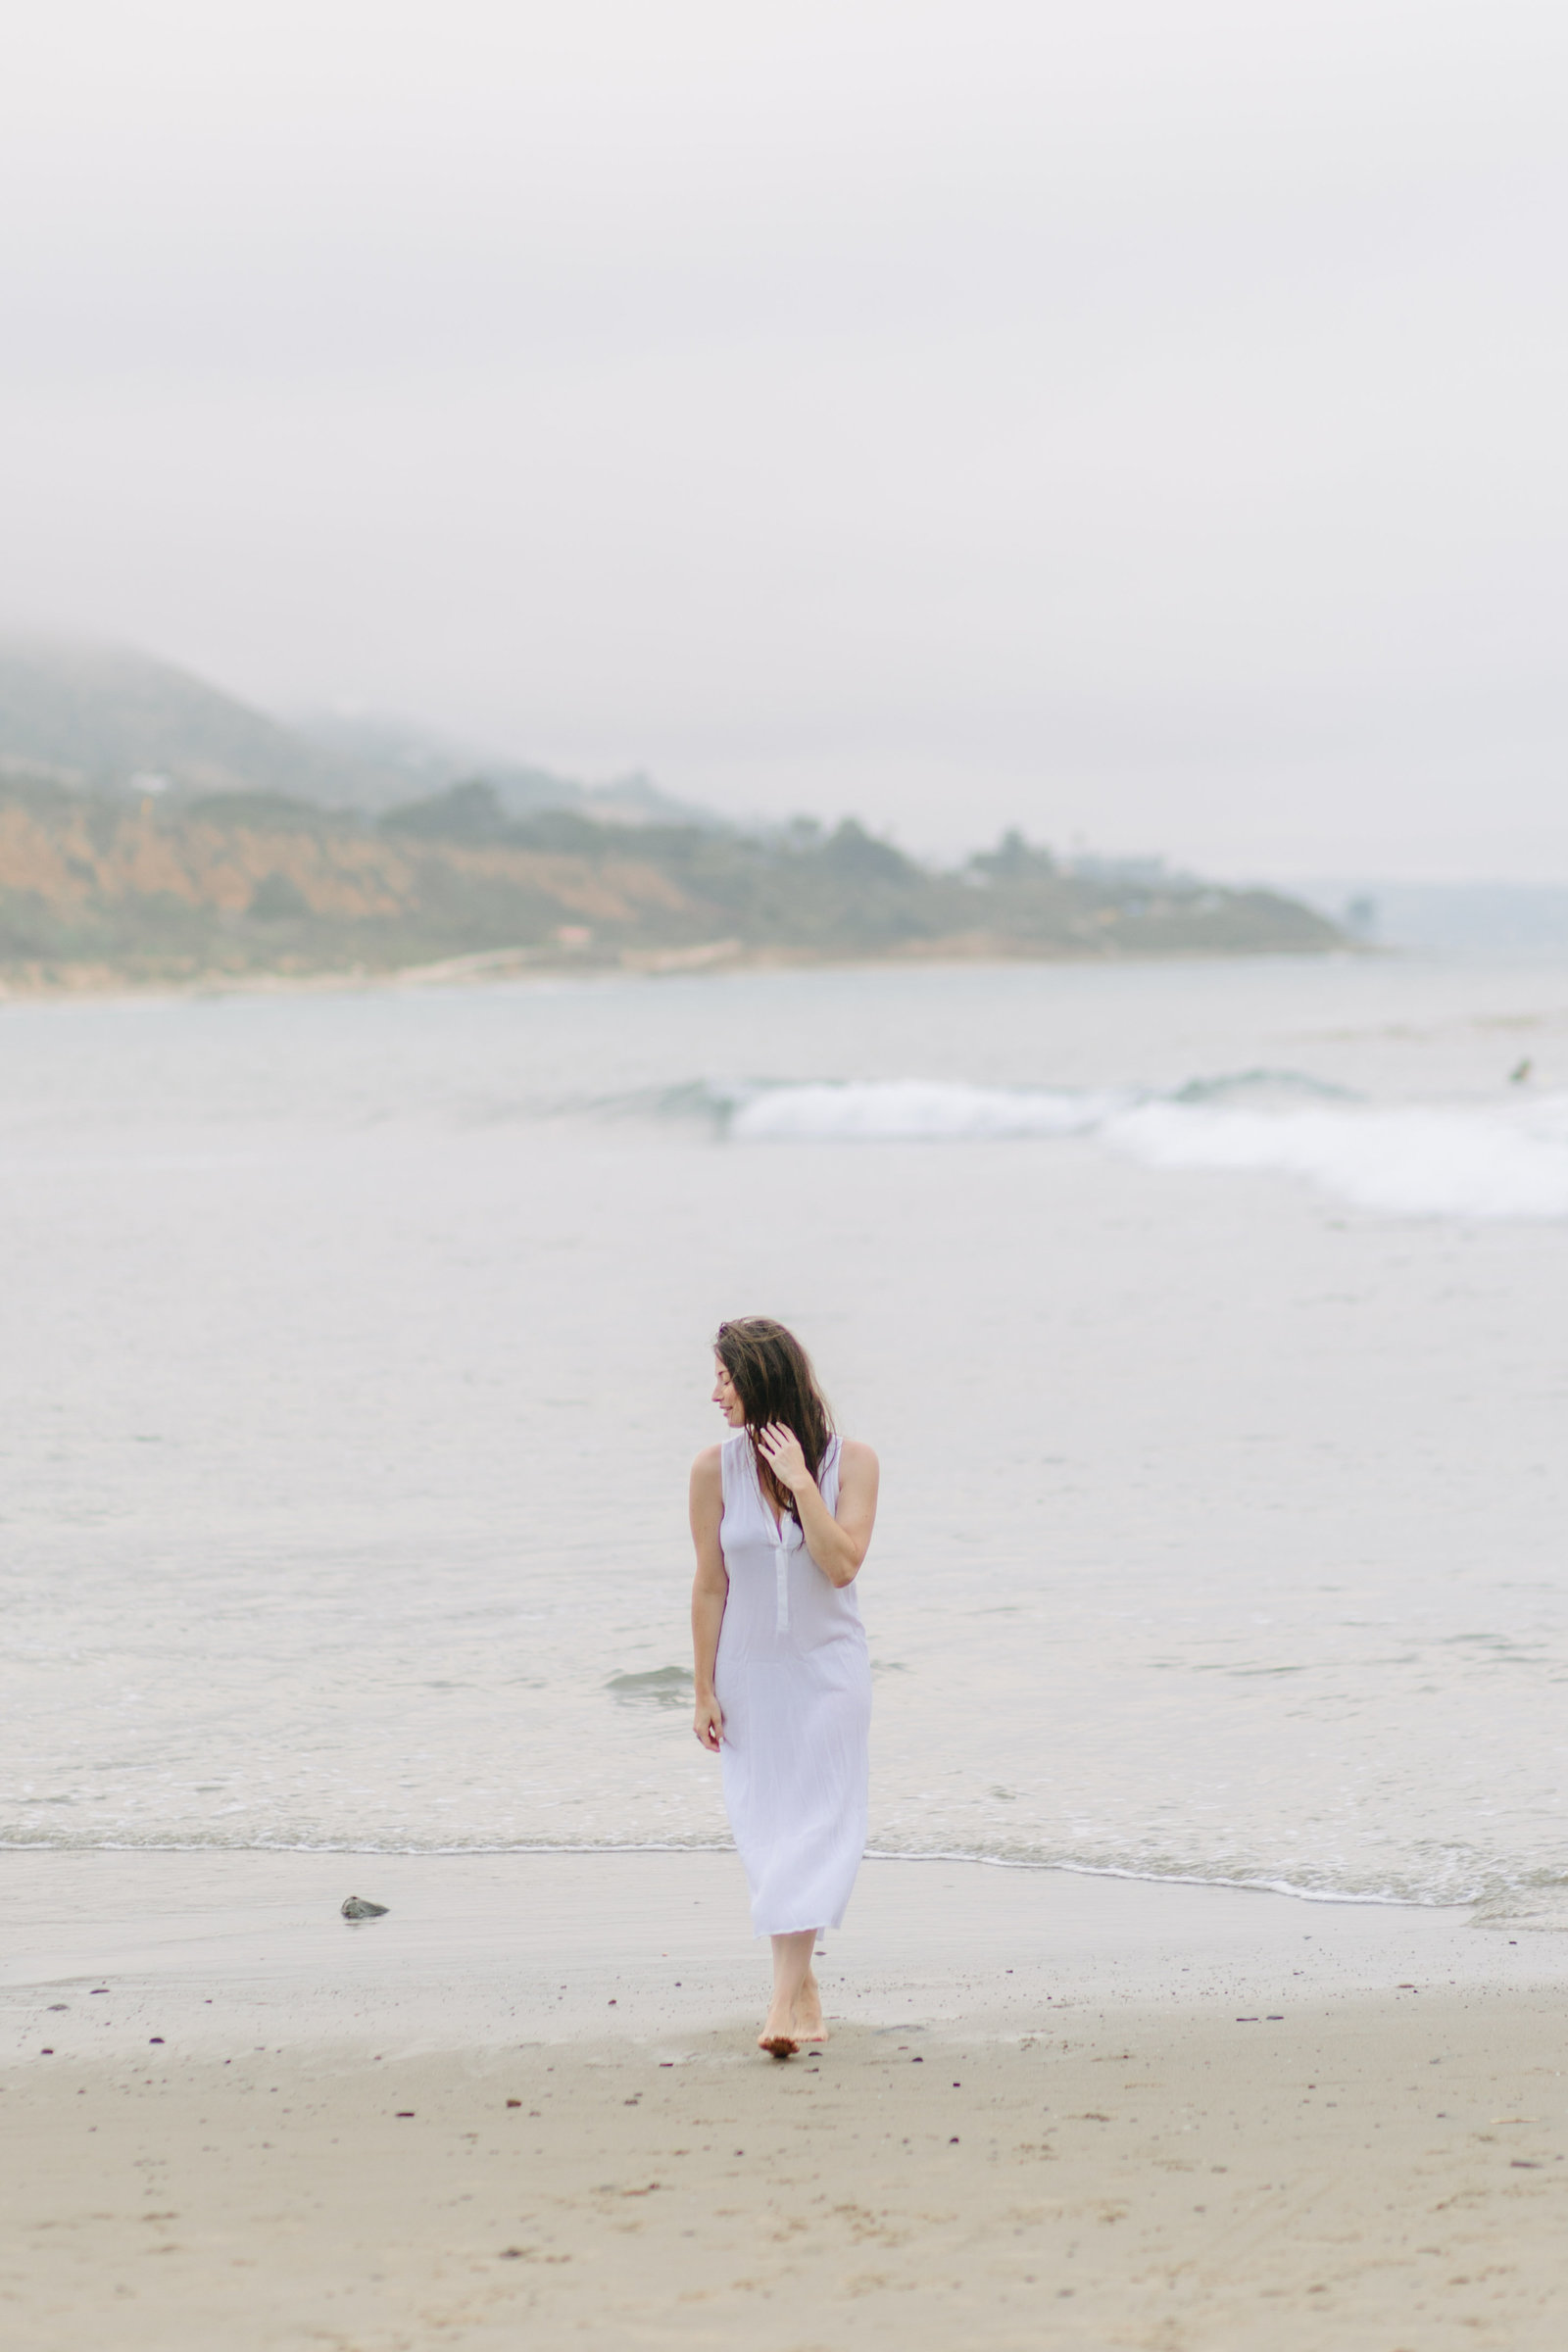 El Leo Carrillo Beach Malibu Angelika Johns Photography-3220